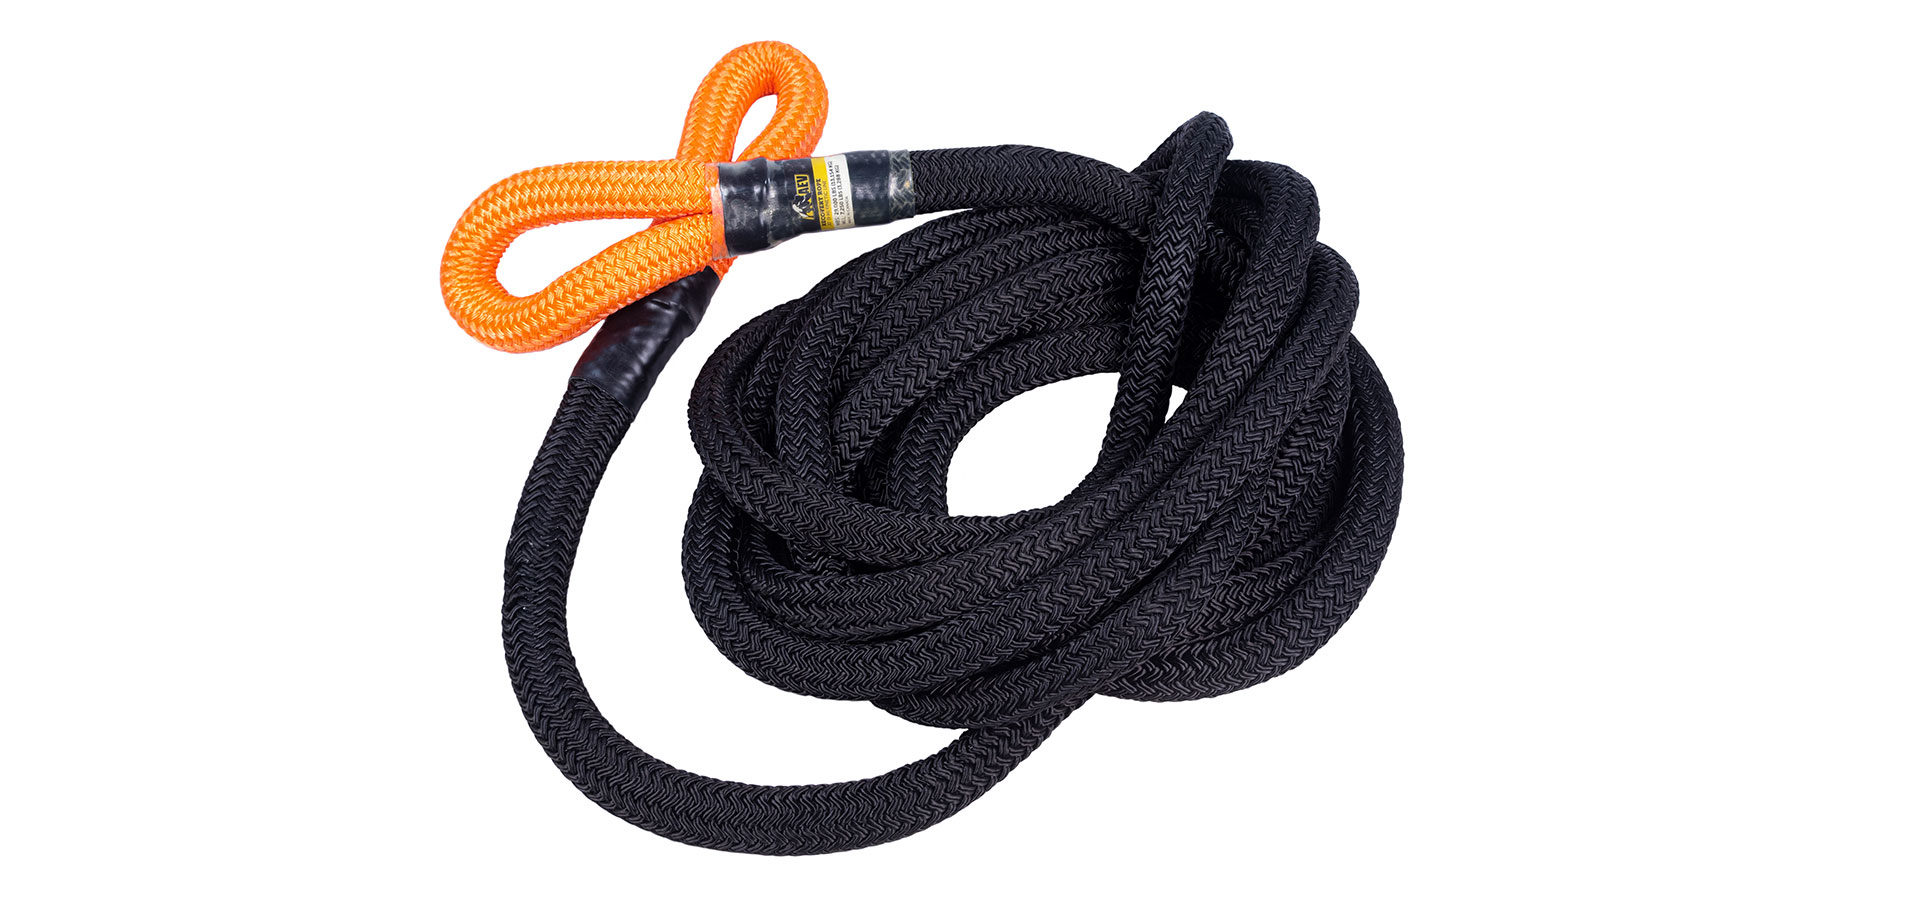 AEV kerr yanker recovery rope